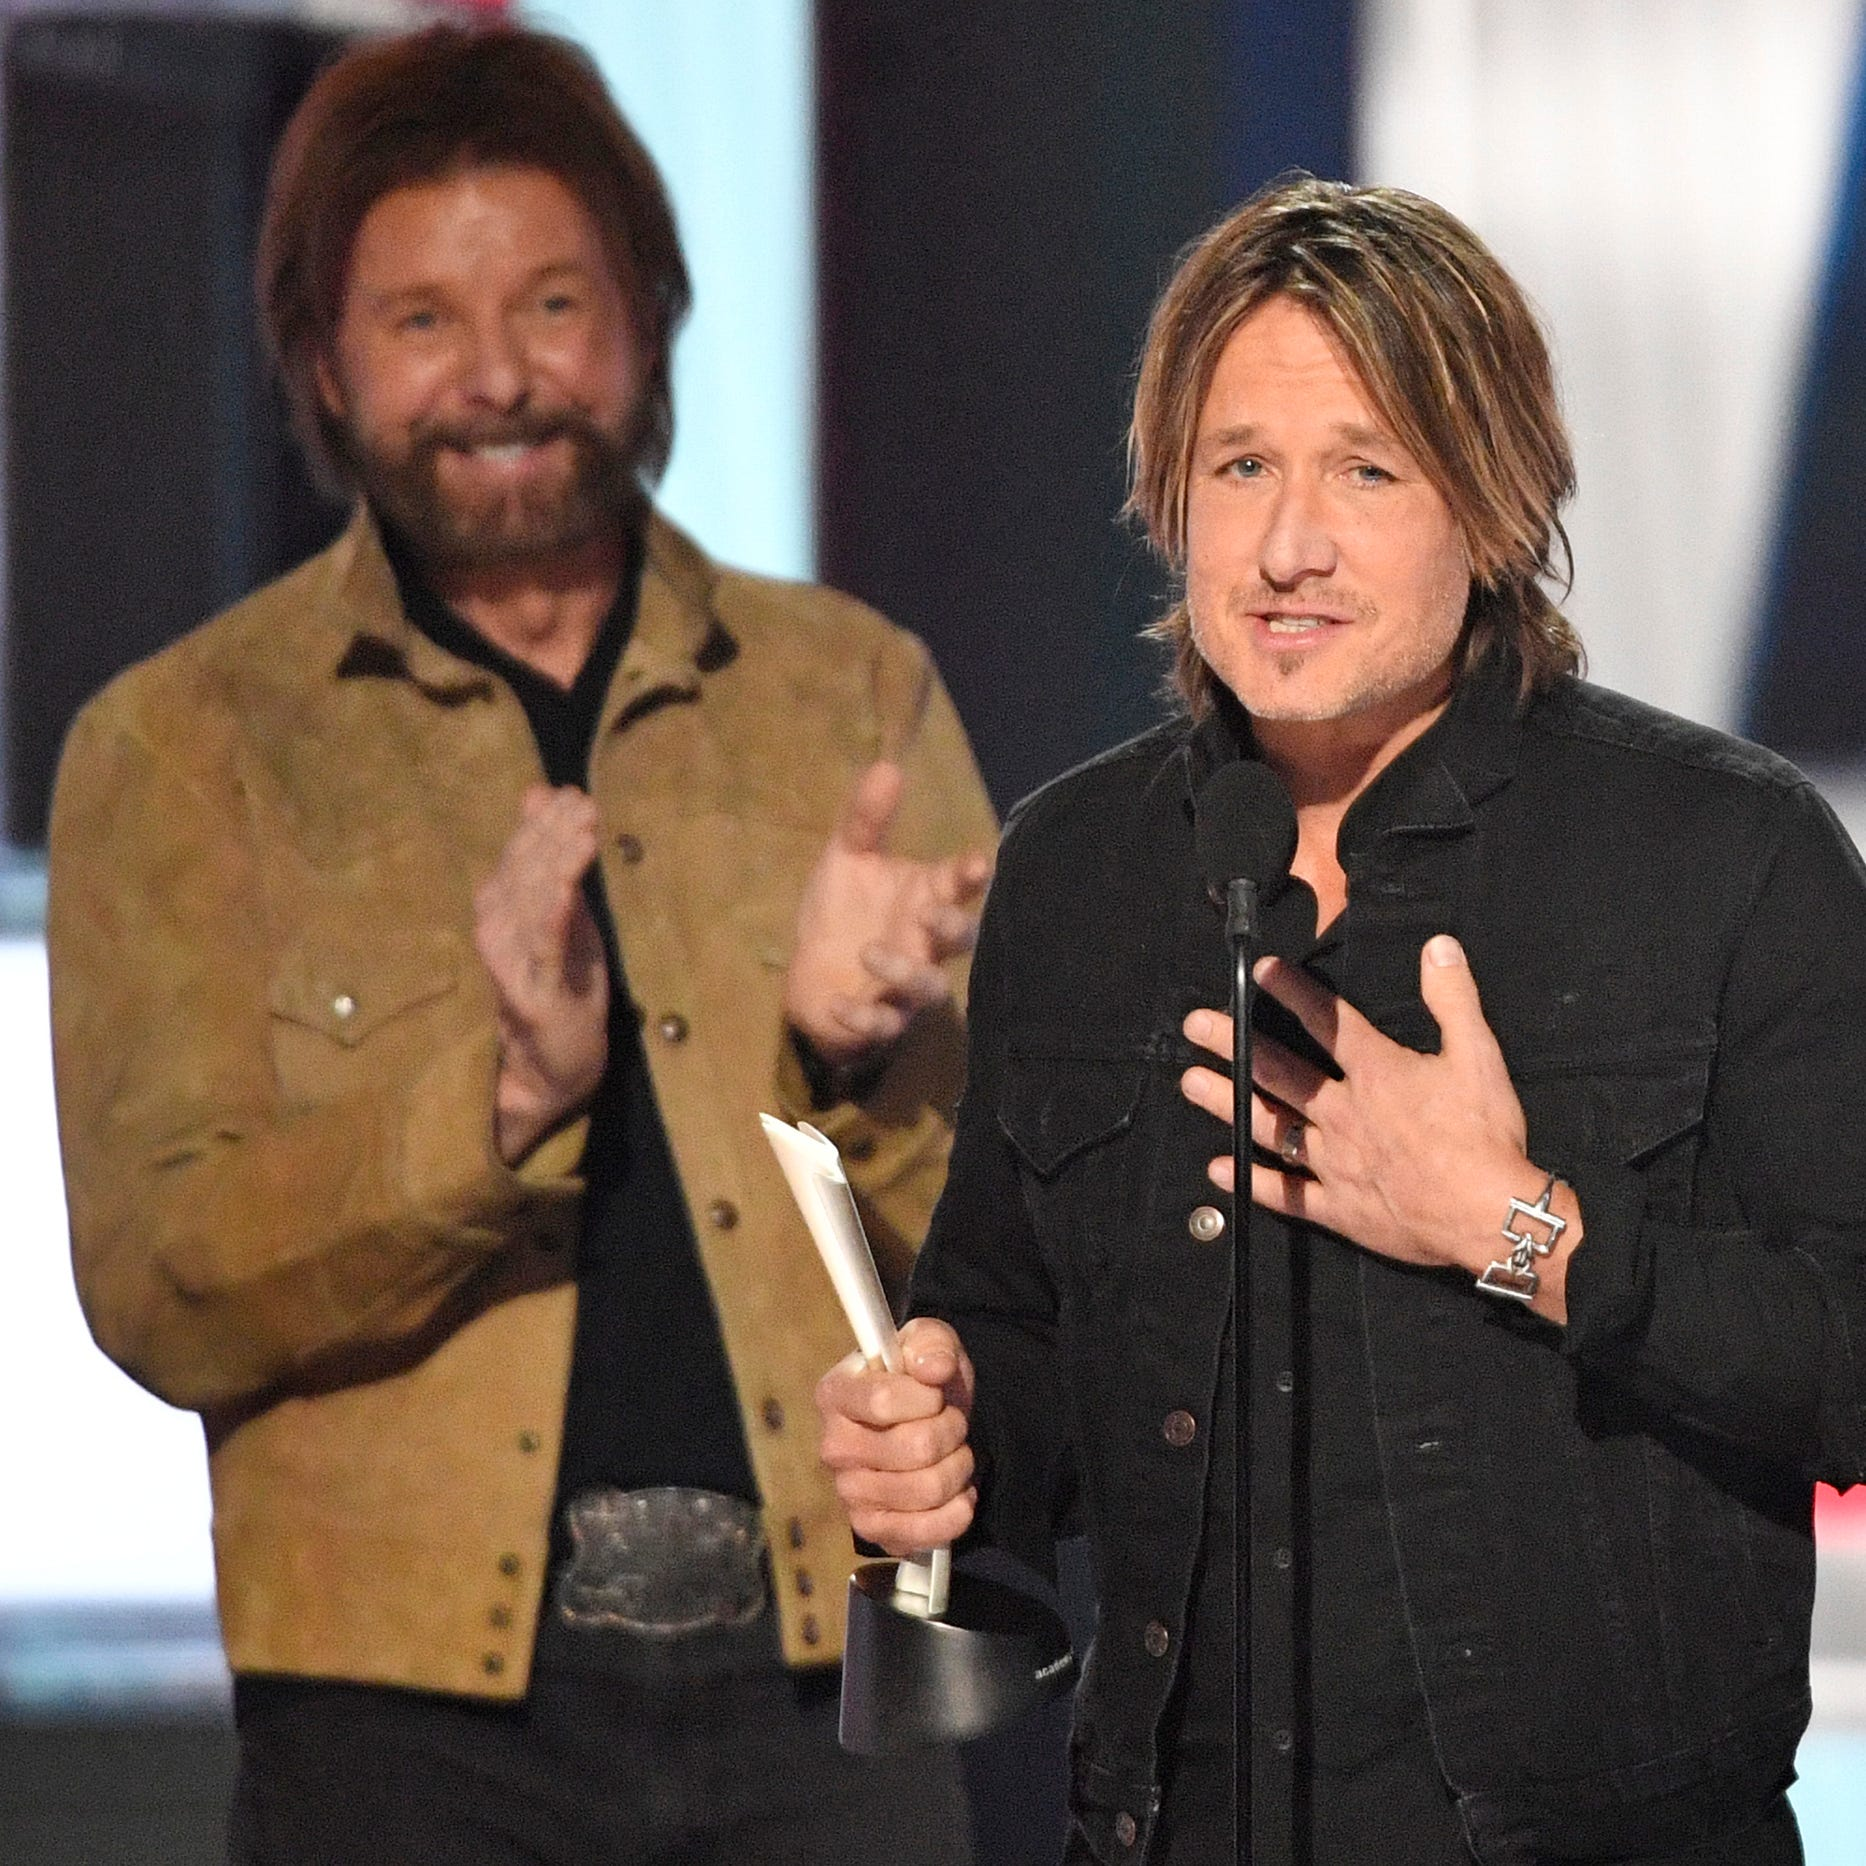 ACM Awards: Keith Urban, Dan + Shay reign